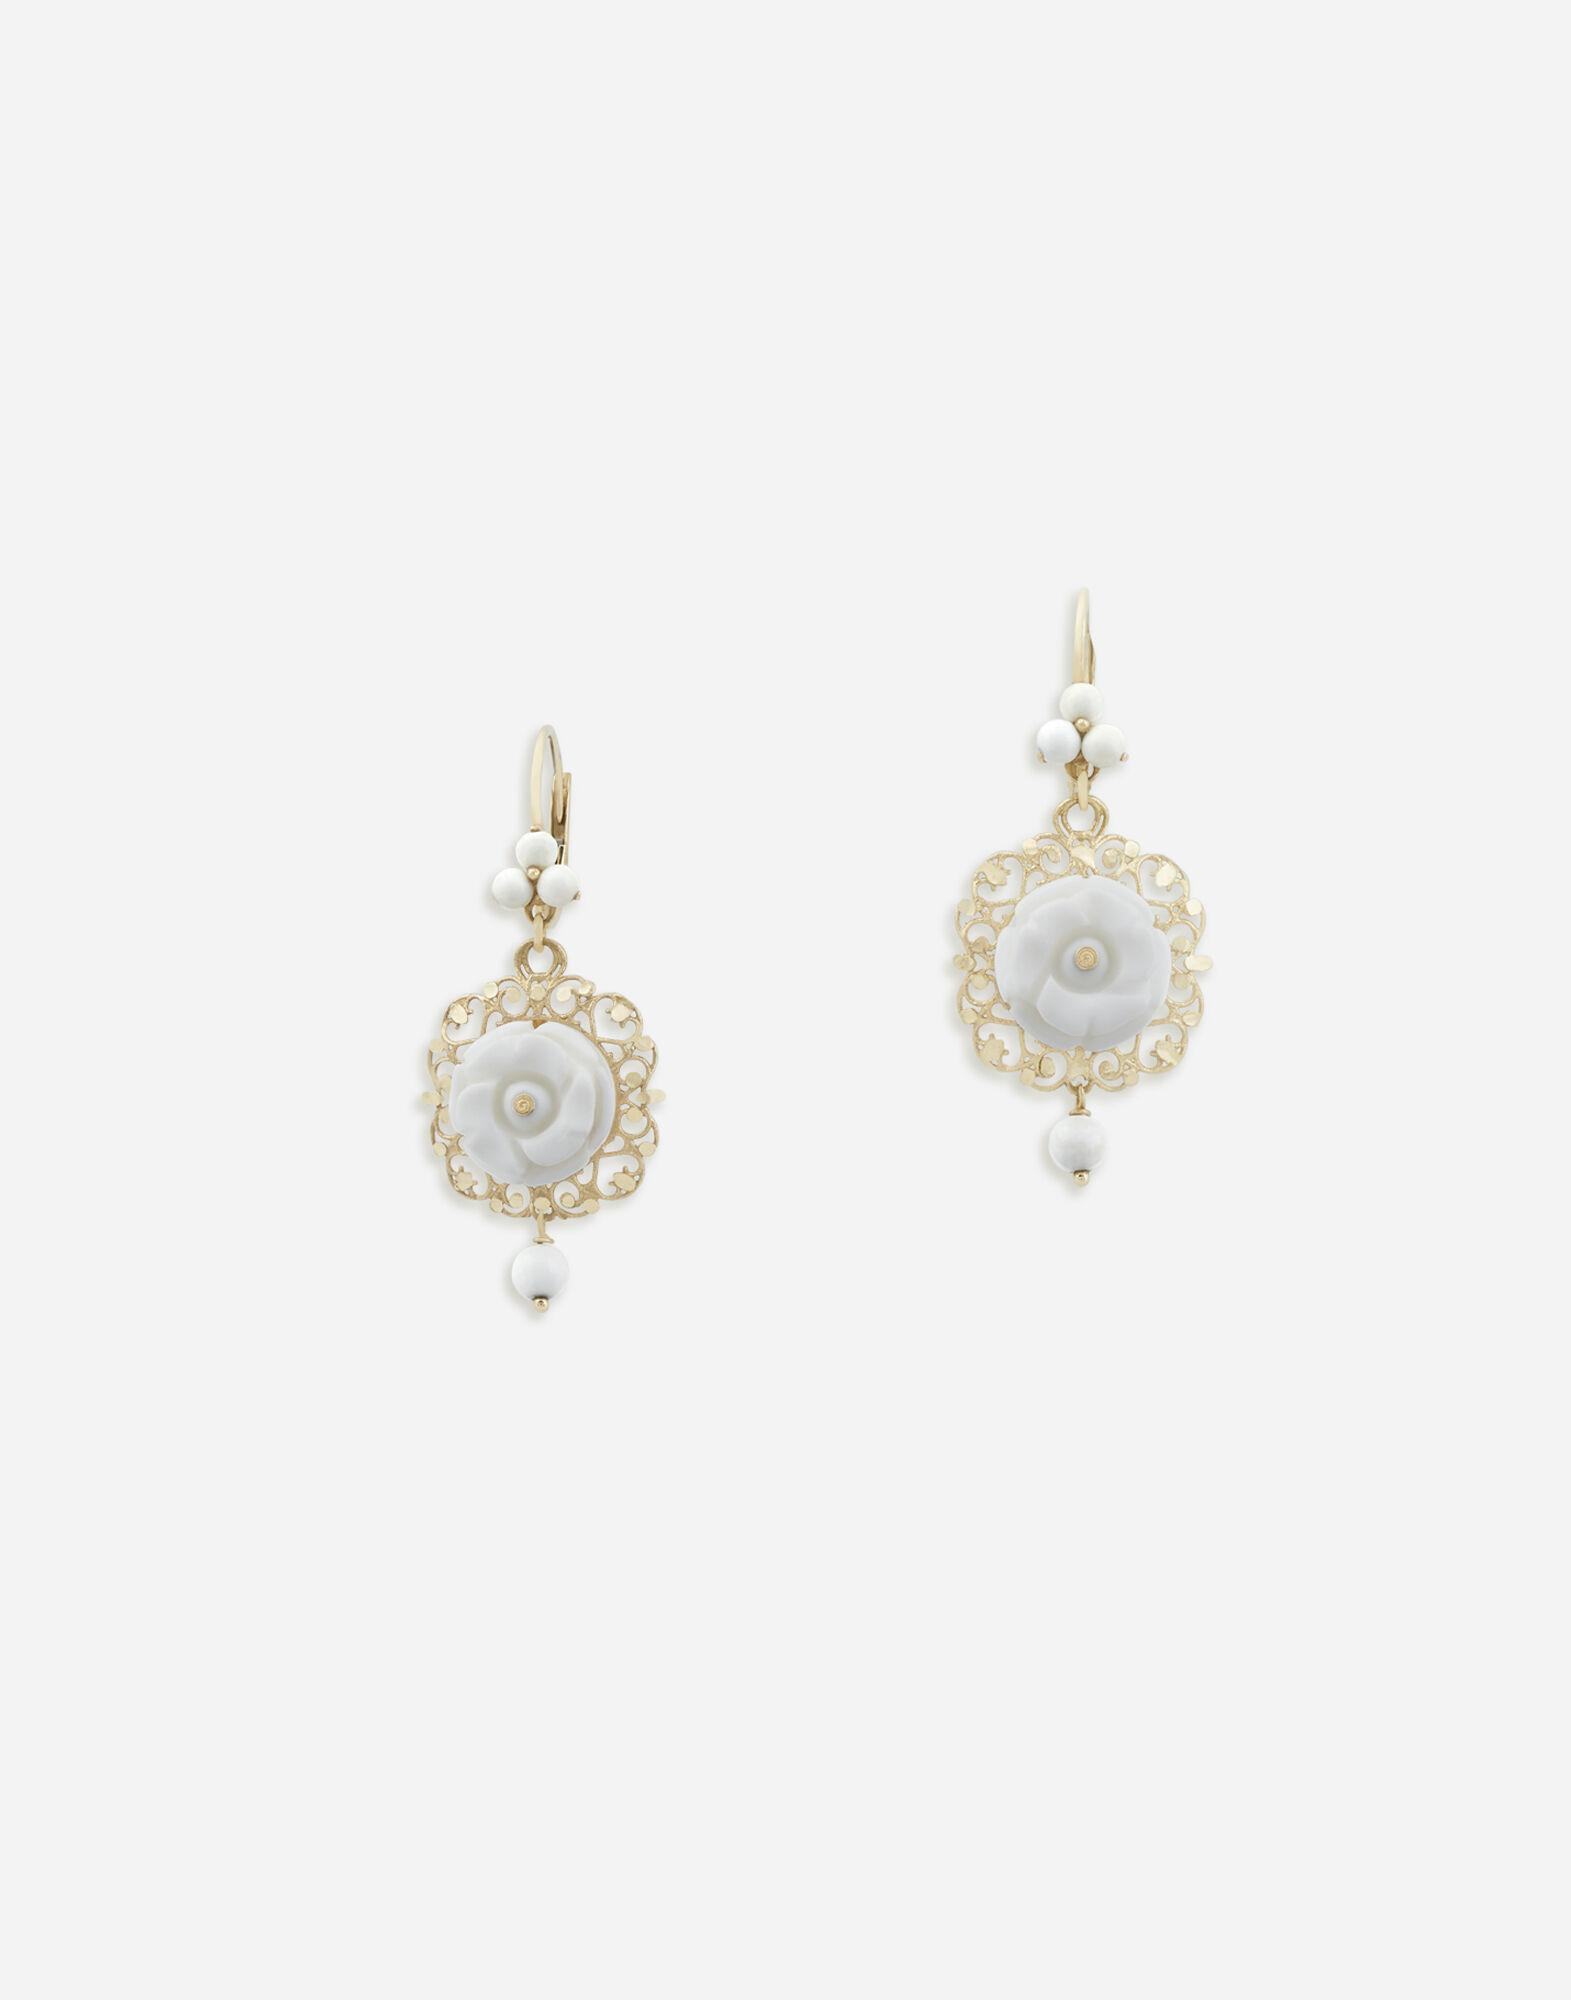 Mamma earrings in yellow gold white opals